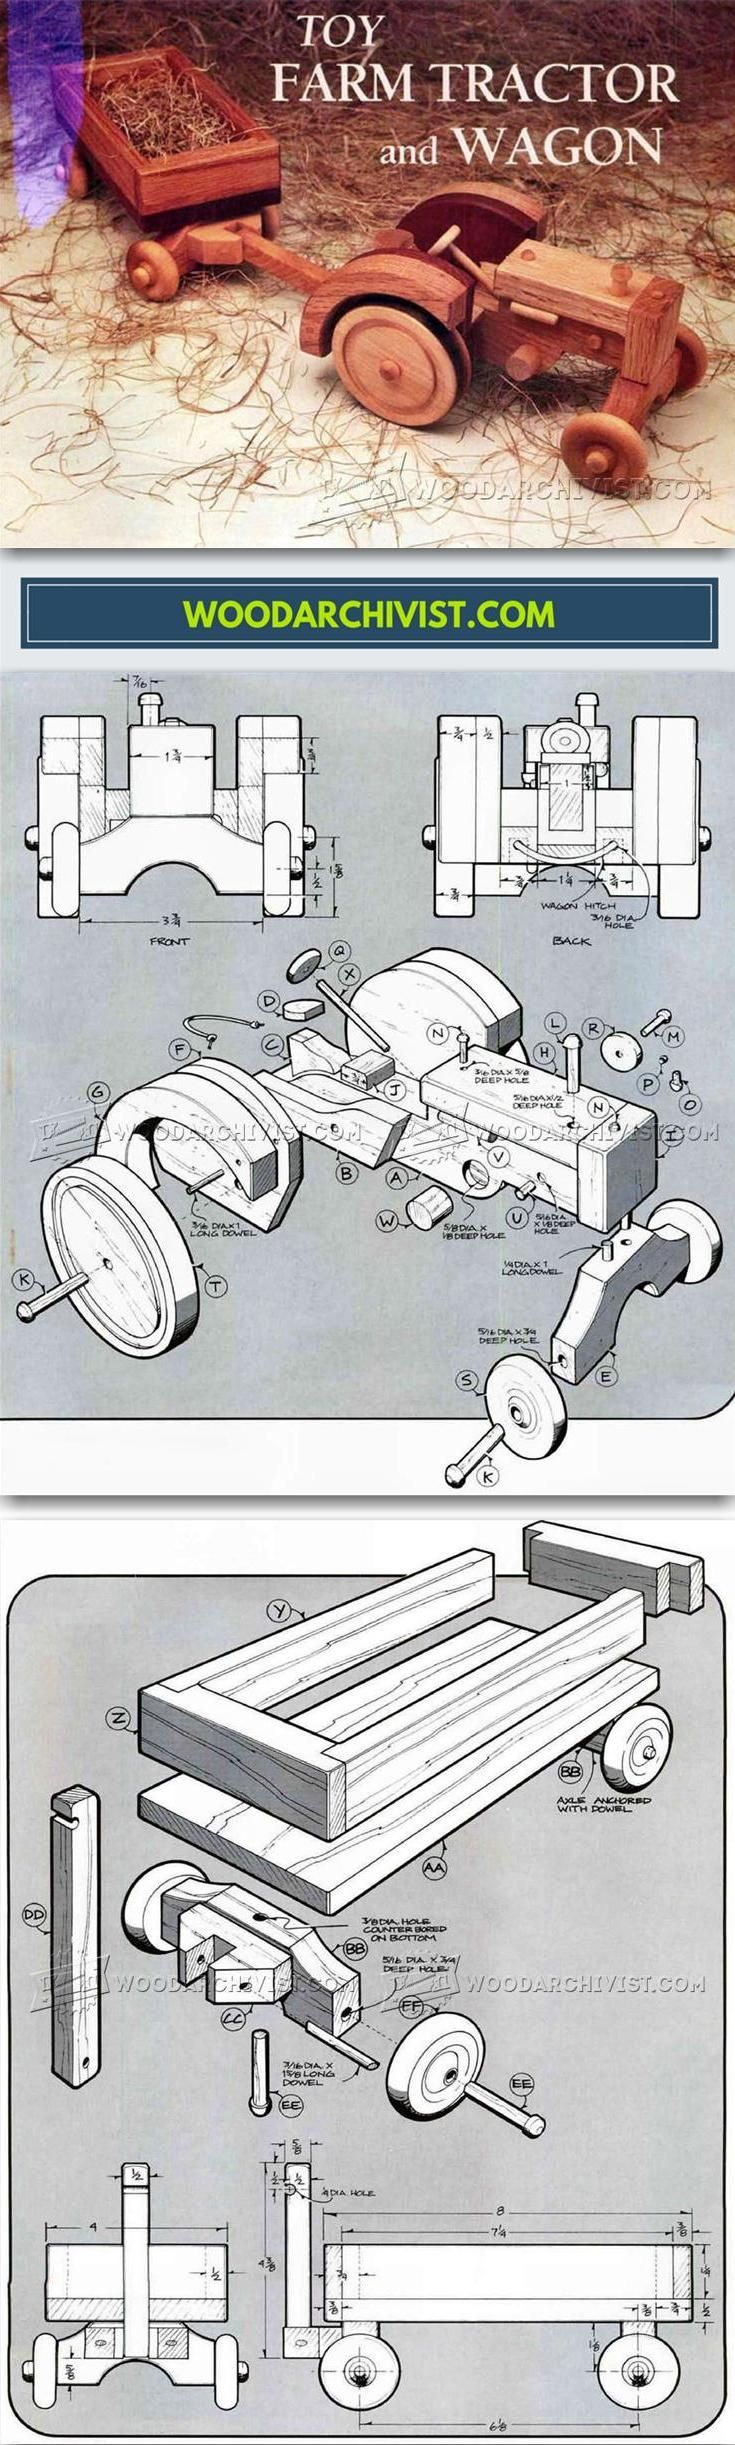 wooden toy tractor plans - wooden toy plans and projects